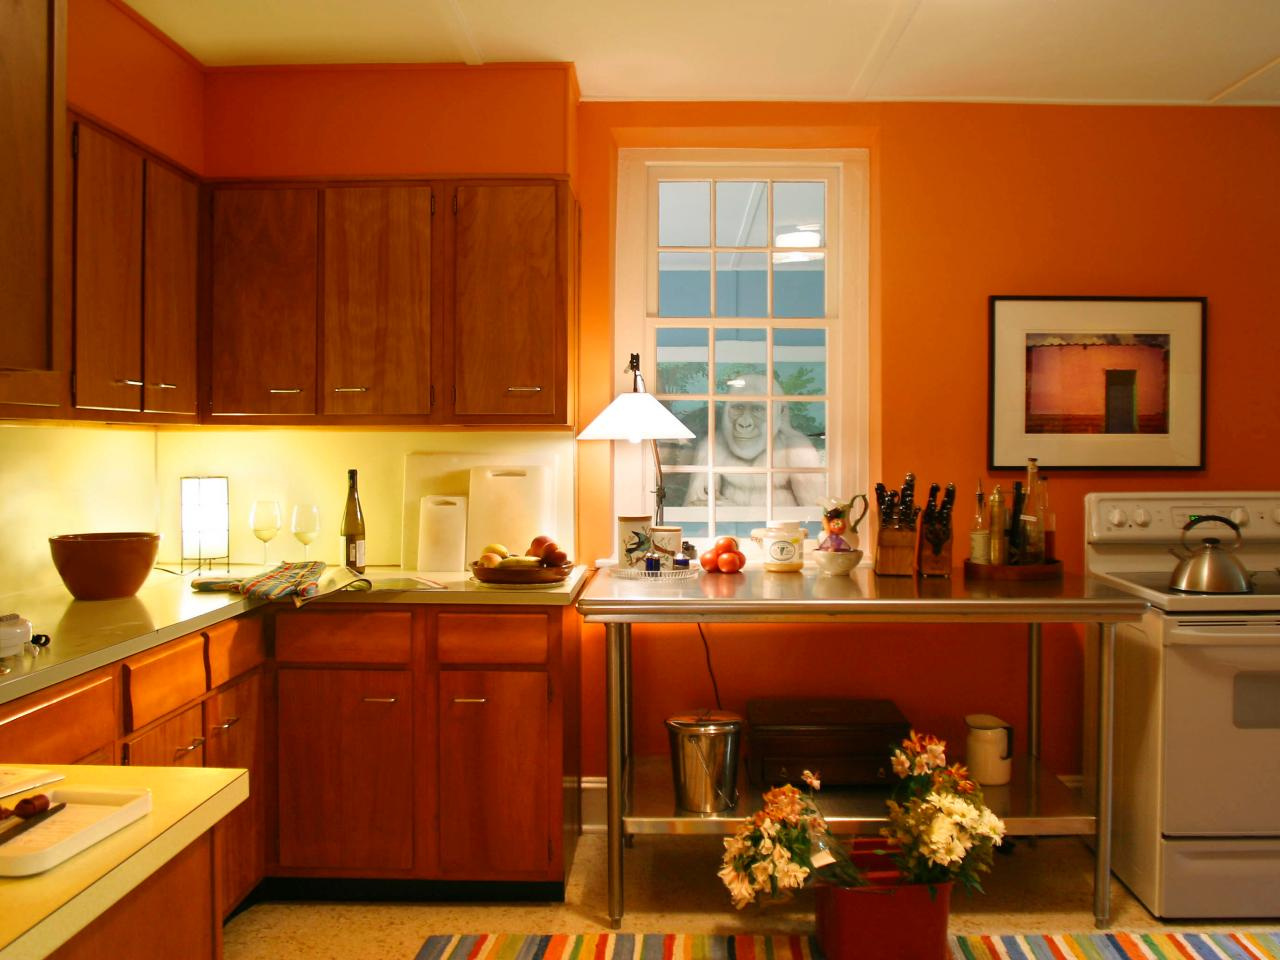 Cheap Kitchen Cabinets: Pictures, Options, Tips & Ideas